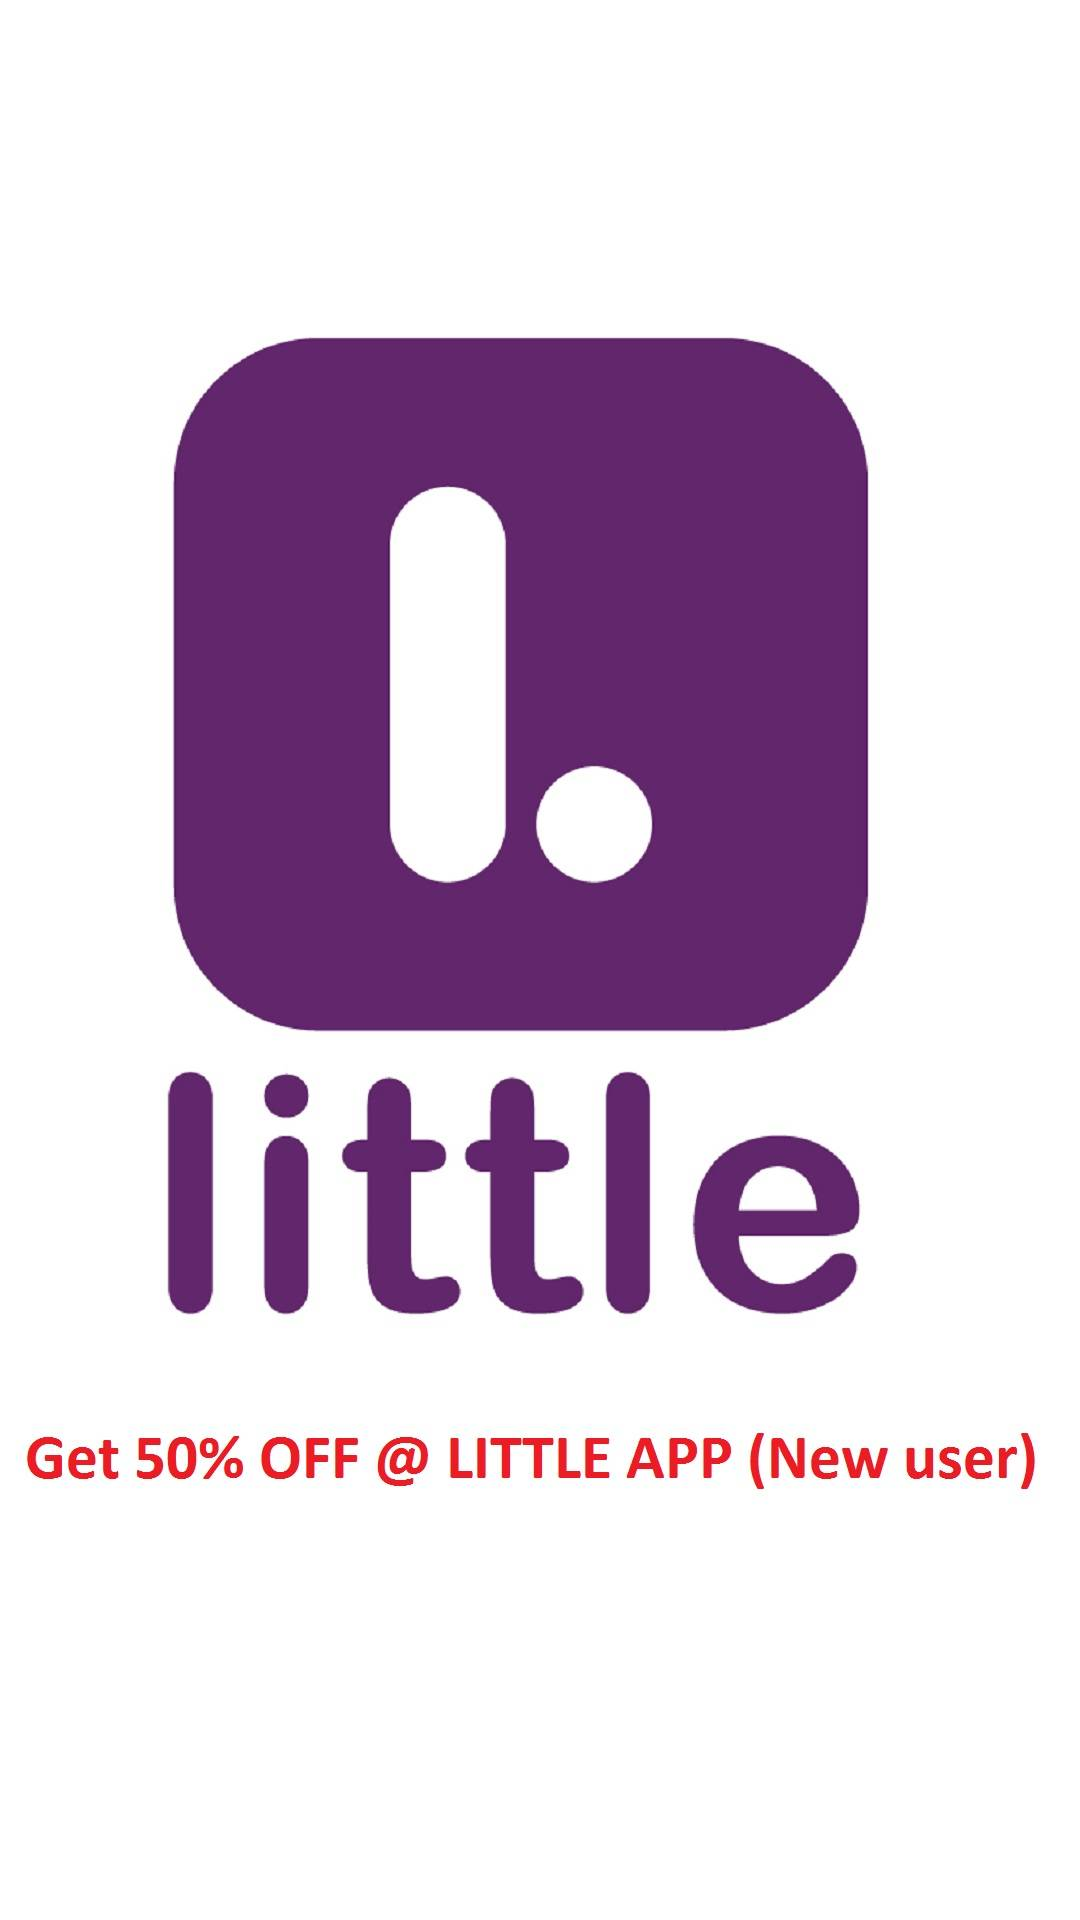 Little App – Get 50% Off On First Order Using Paytm